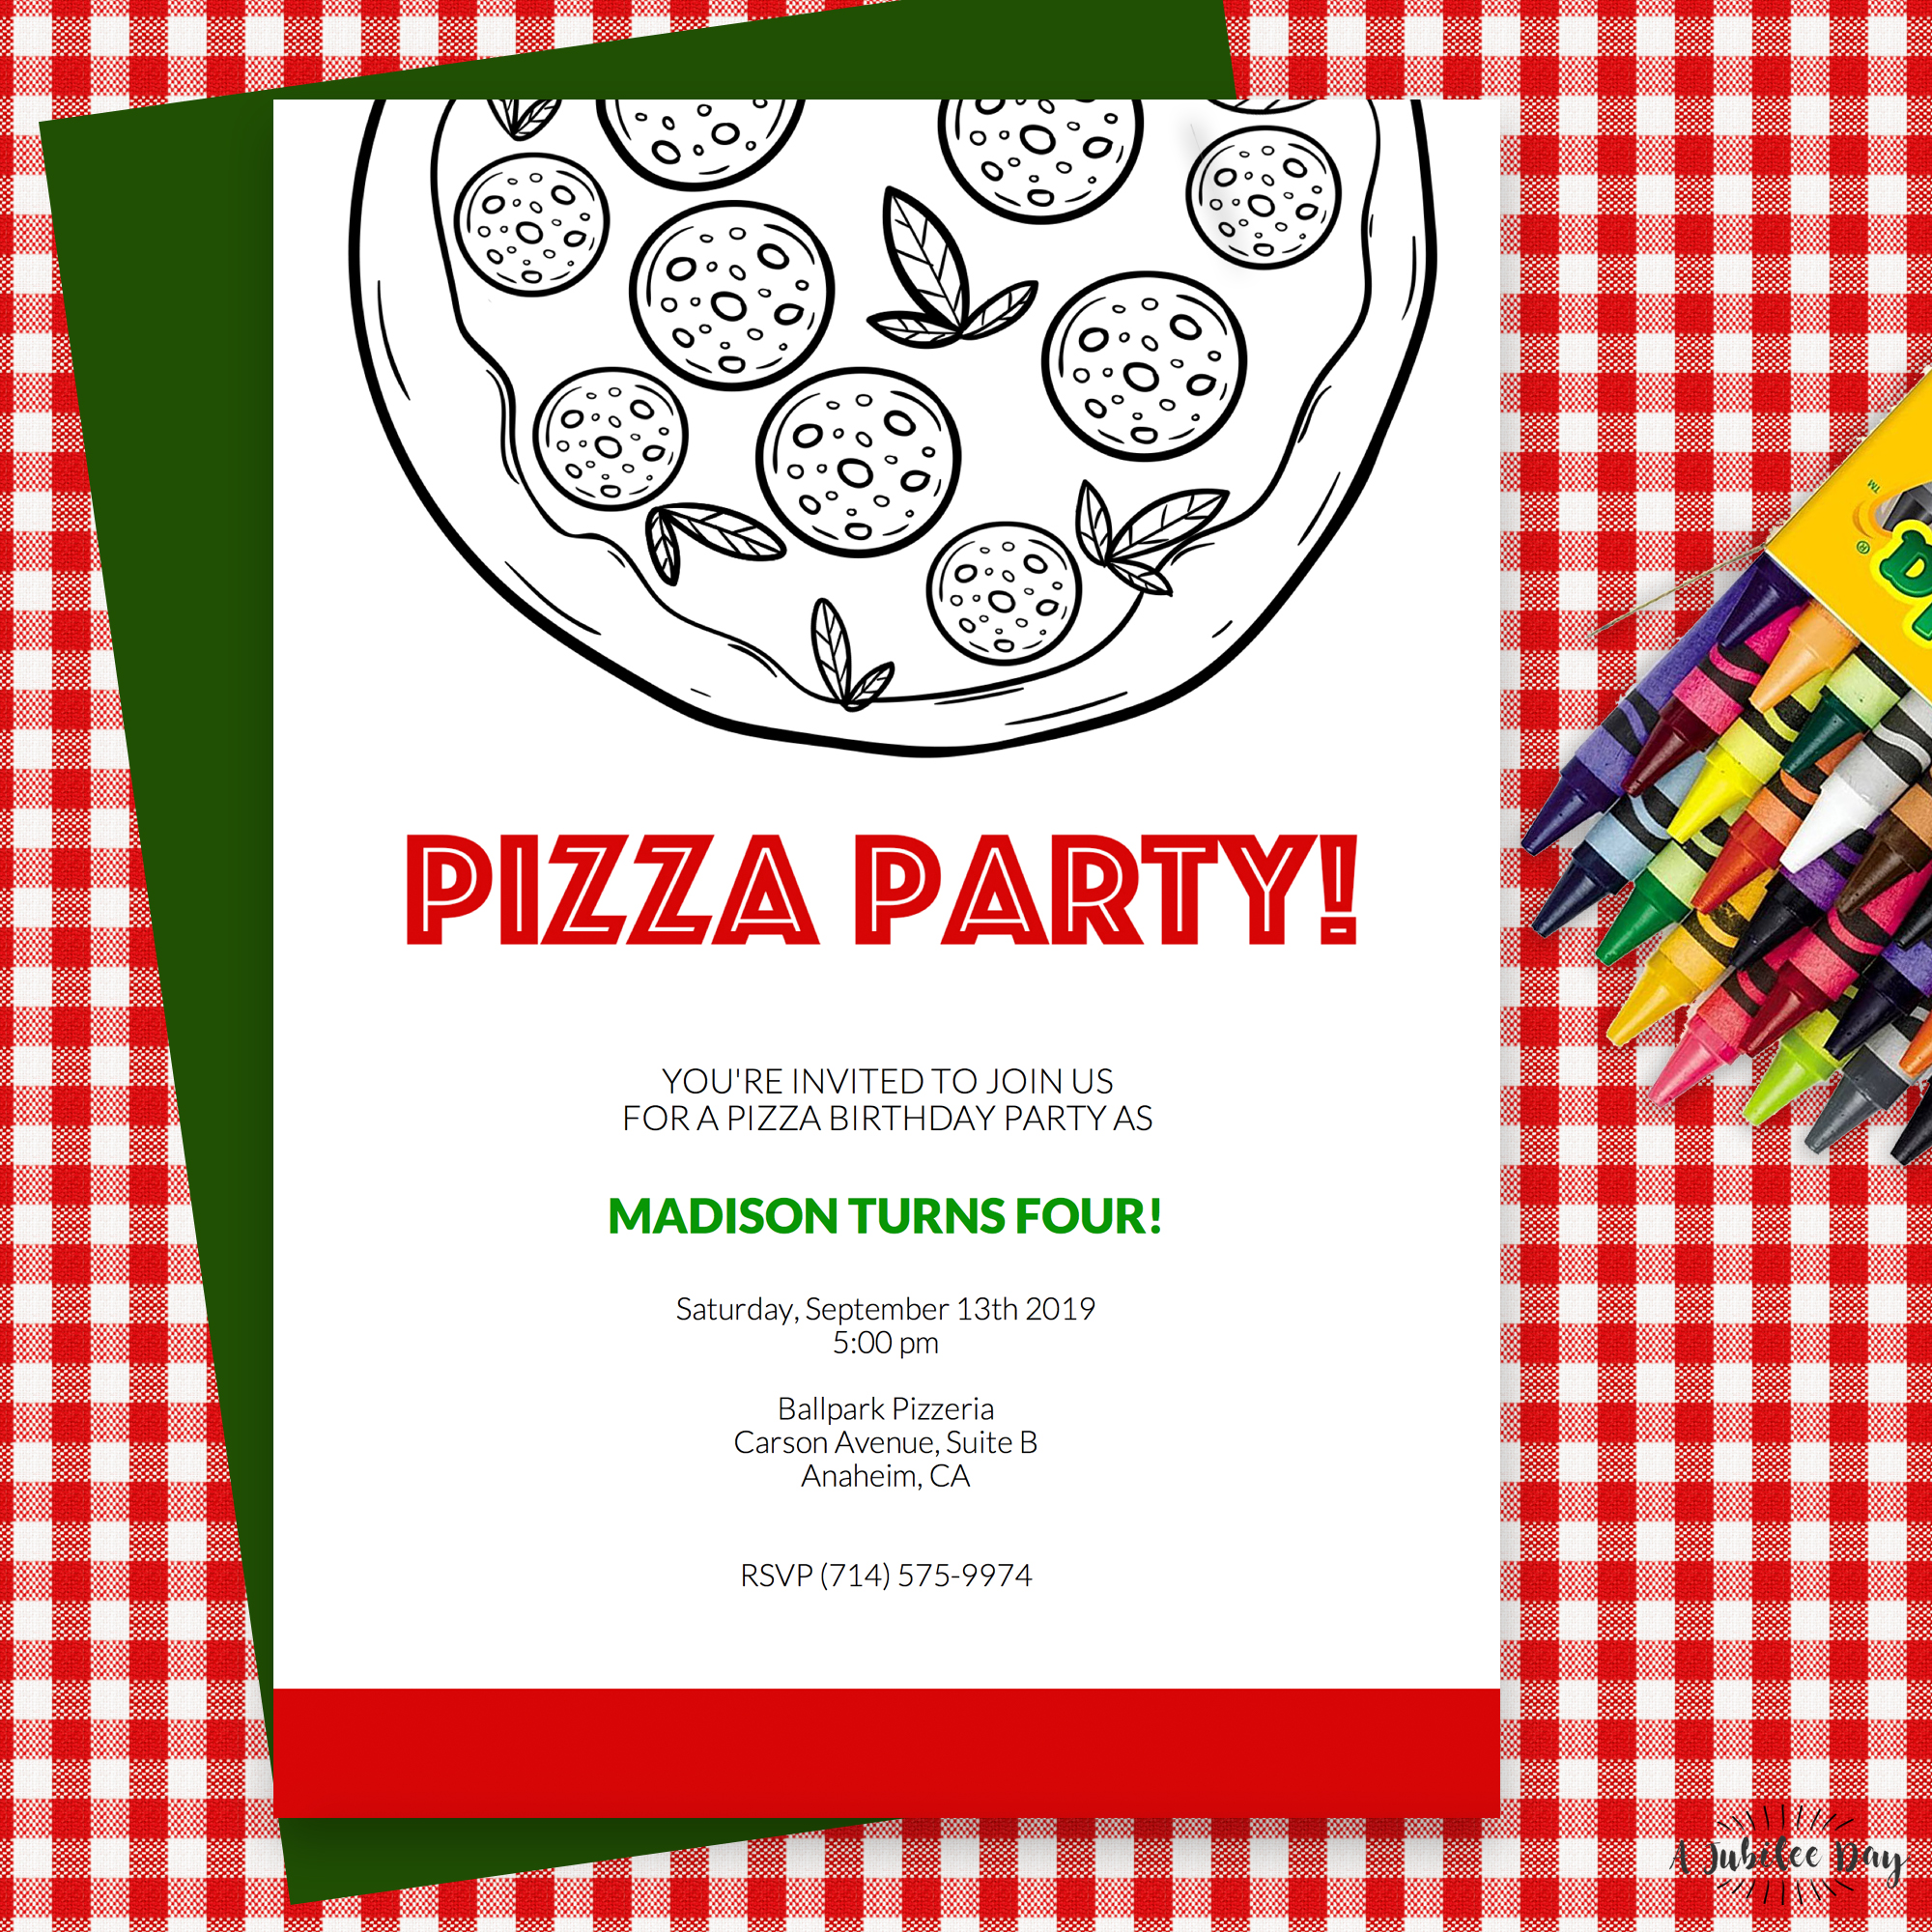 Pizza Party Invitation A Jubilee Day